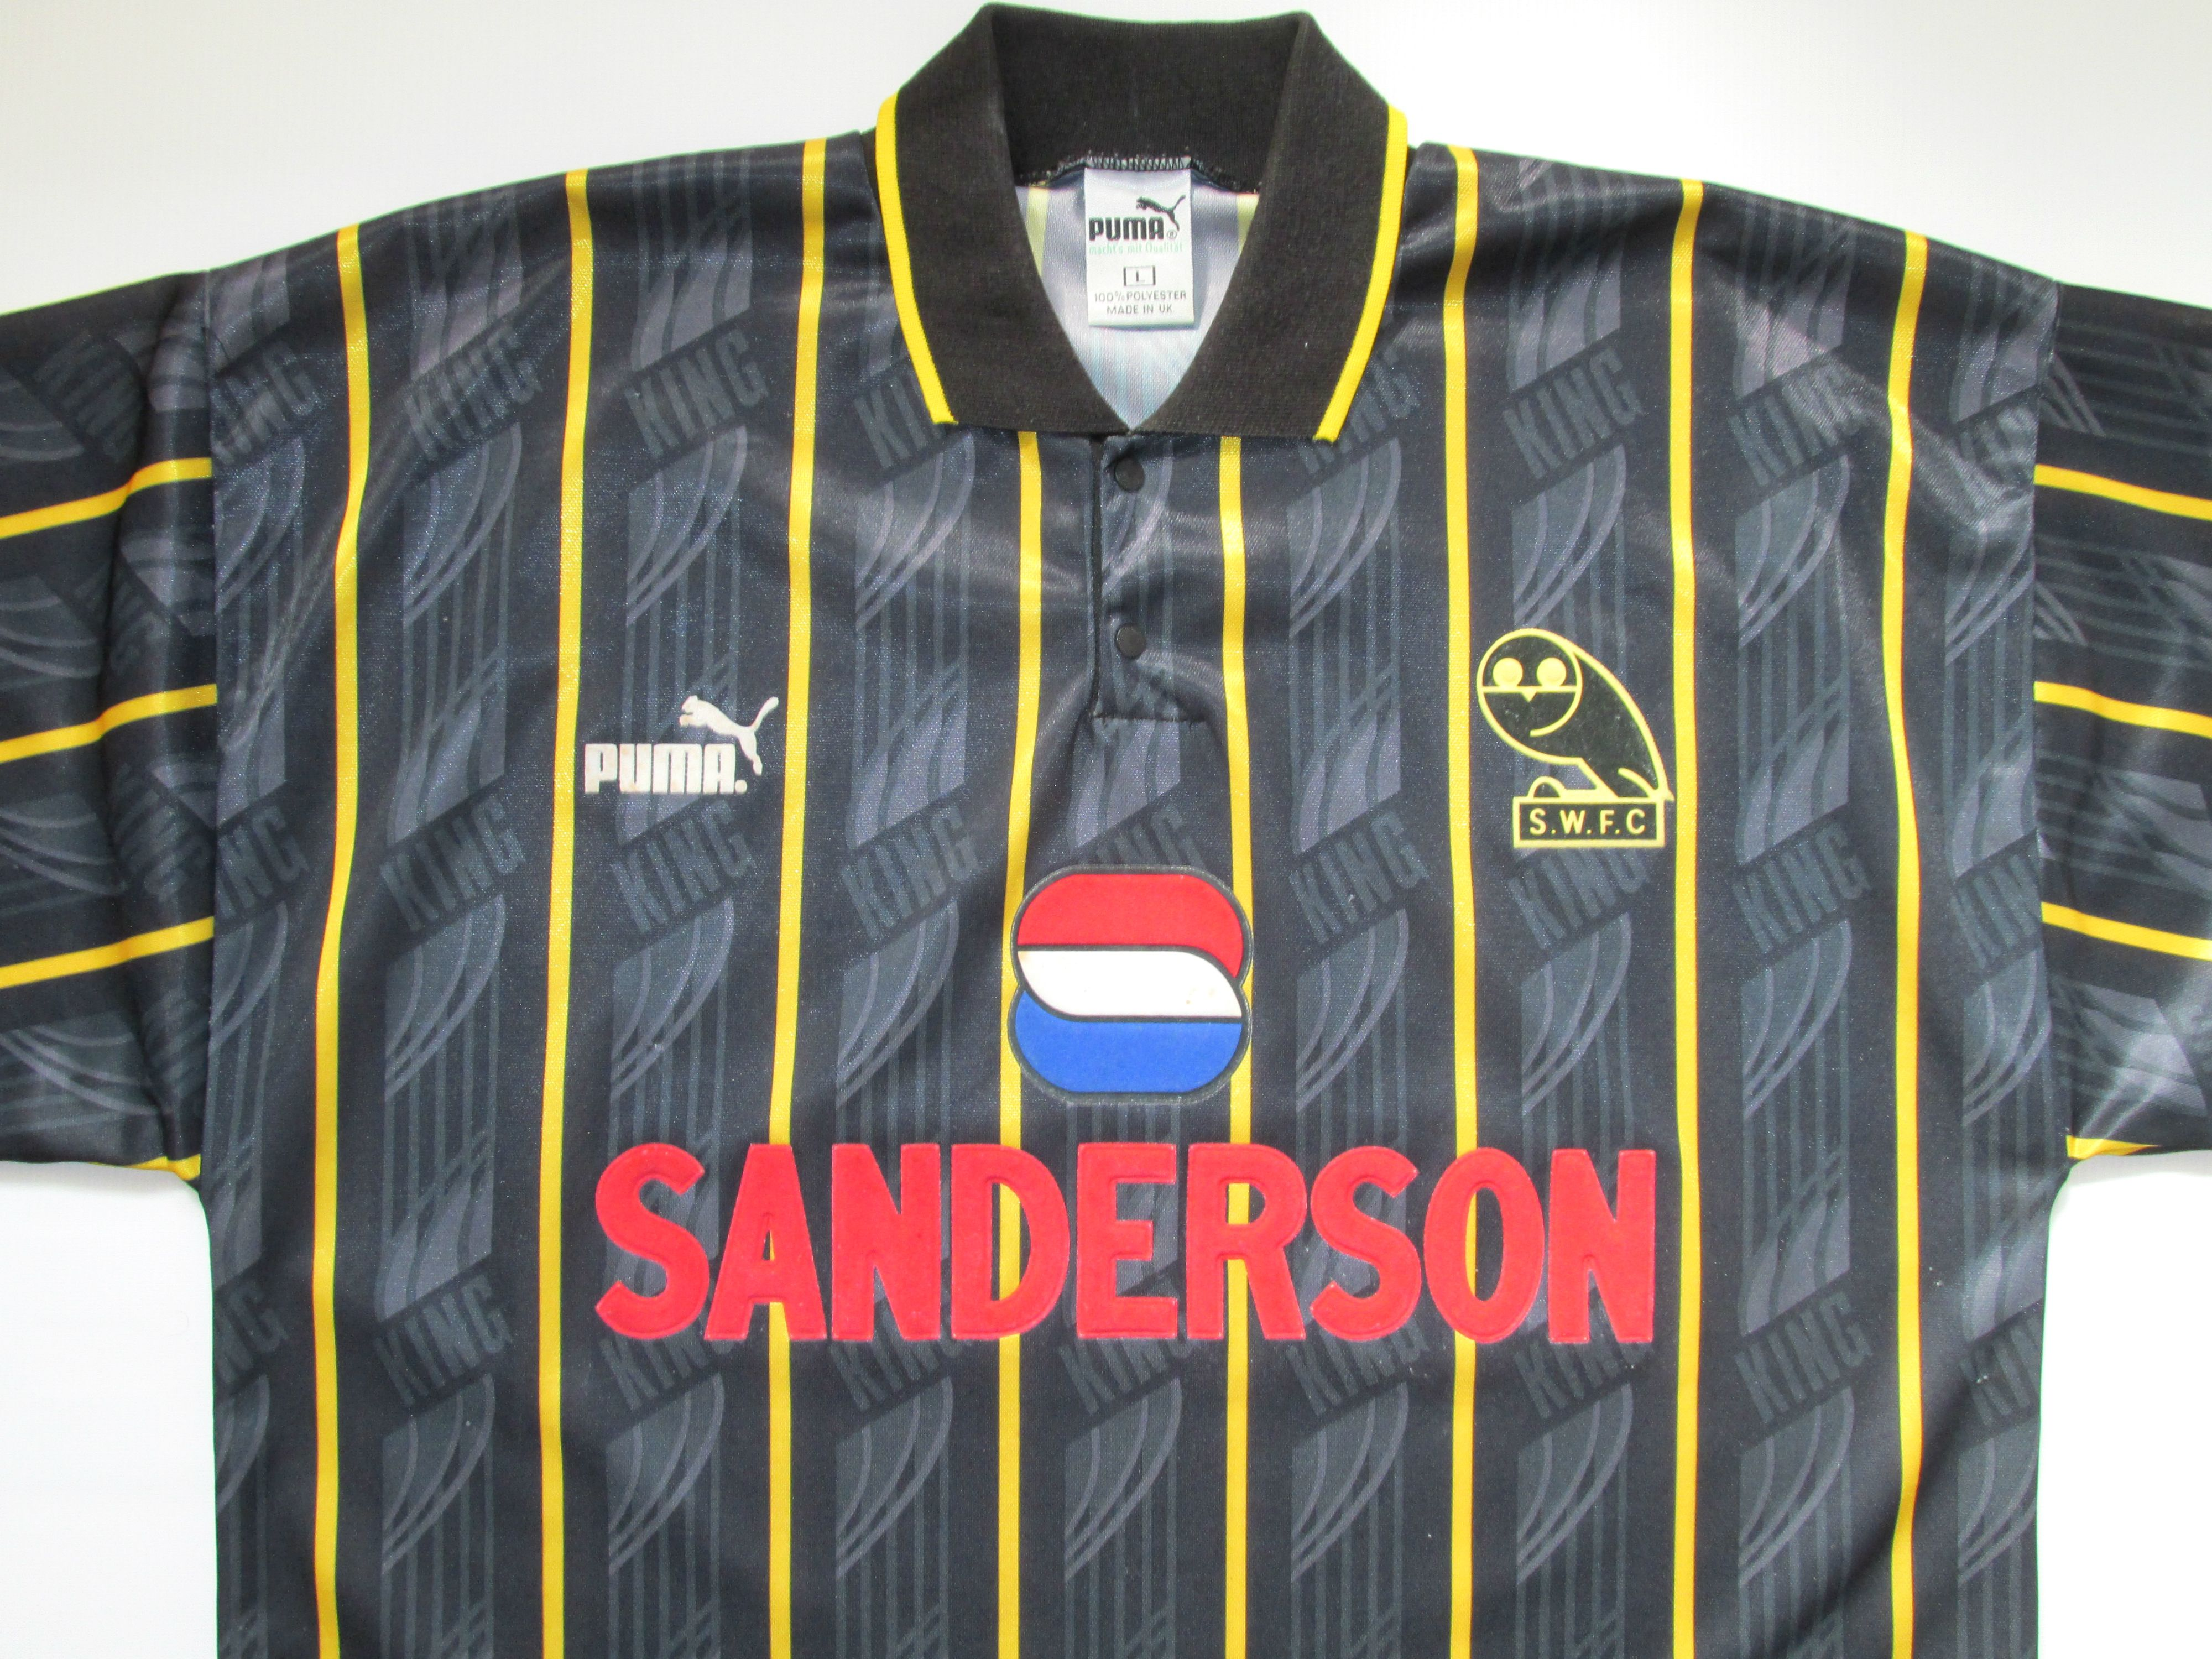 1f2651a9386 Sheffield Wednesday 1993 1994 1995 away football shirt by Puma SWFC  Sanderson retro vintage 90s jersey soccer  sheffield  sheffieldwednesday   swfc  retro ...